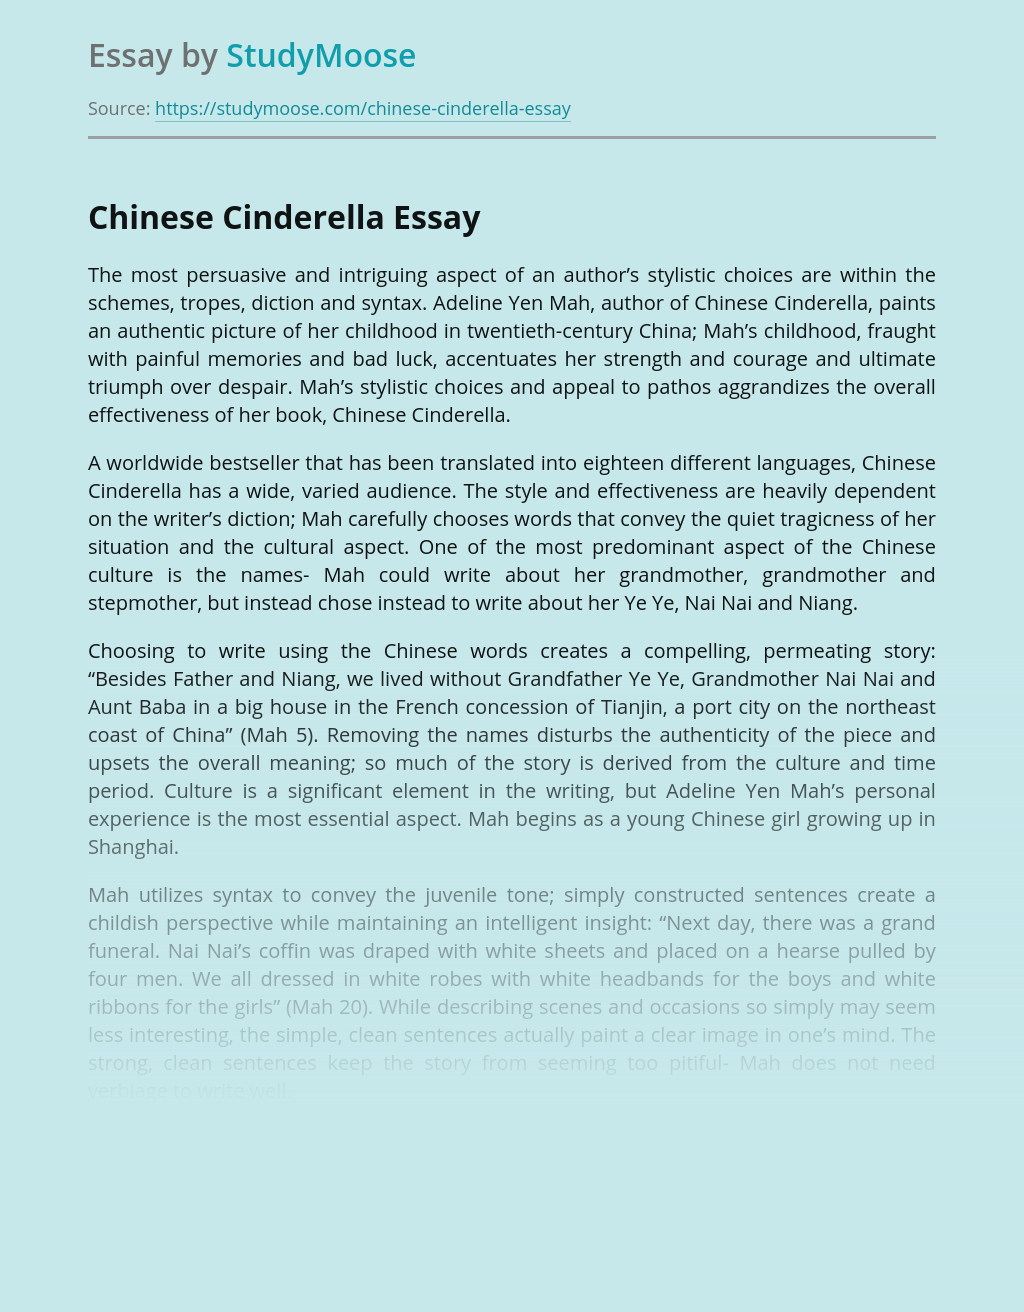 Chinese Cinderella by Adeline Yen Mah Book Review